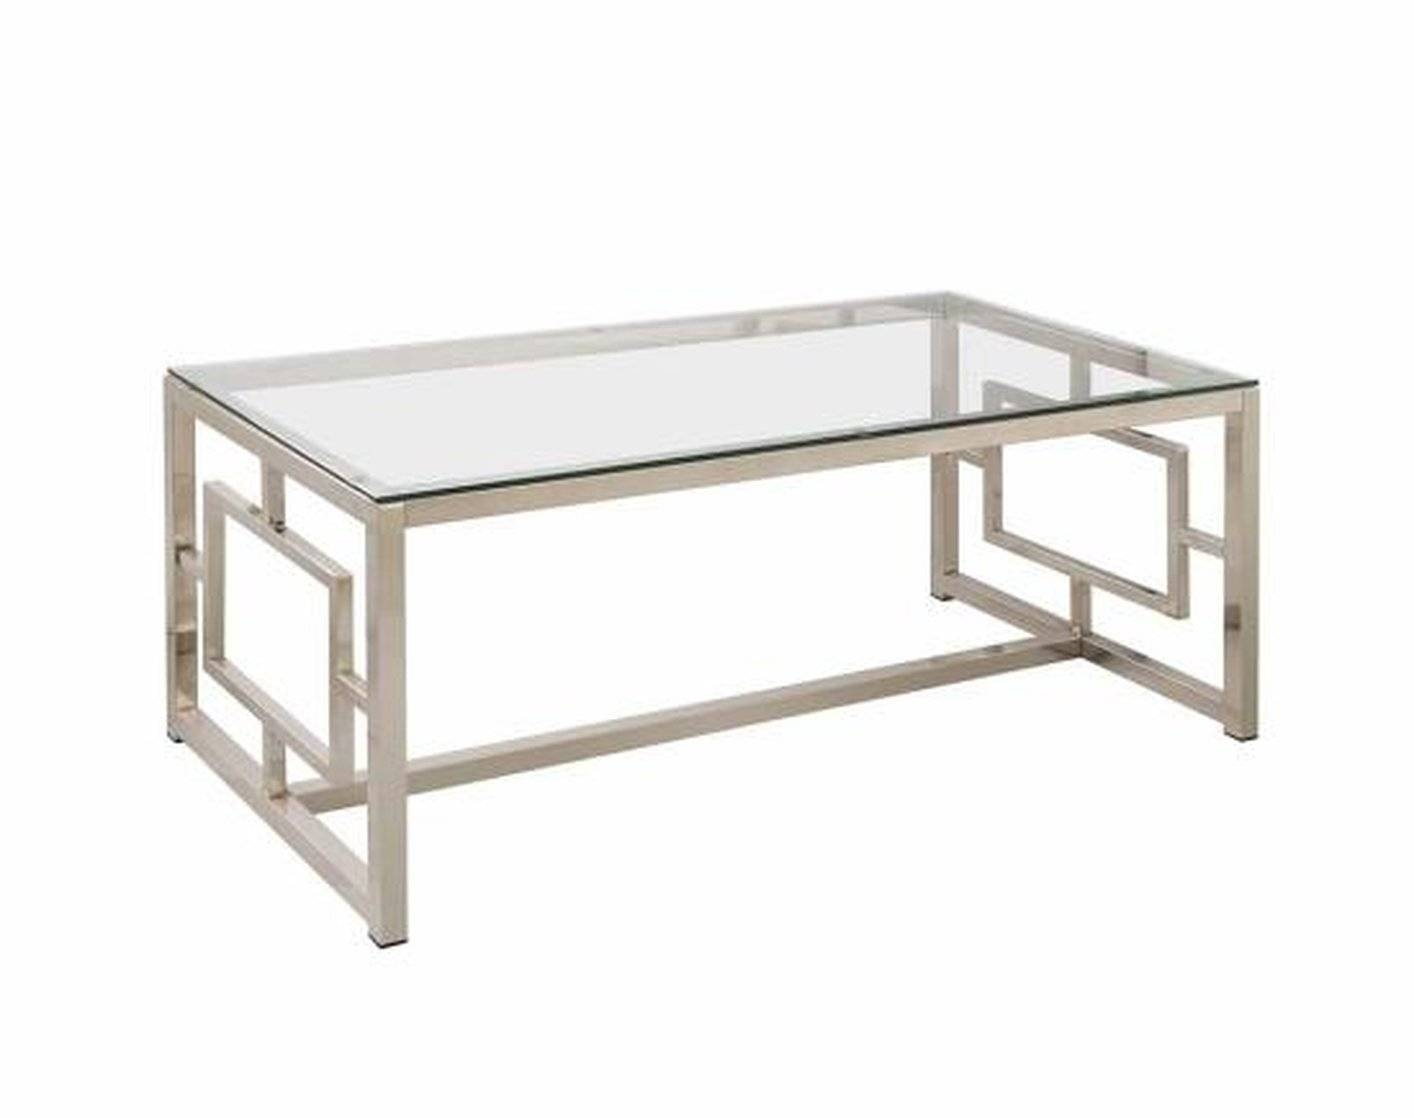 Coffee Table: Astounding Silver And Glass Coffee Table Ideas throughout Steel And Glass Coffee Tables (Image 5 of 30)